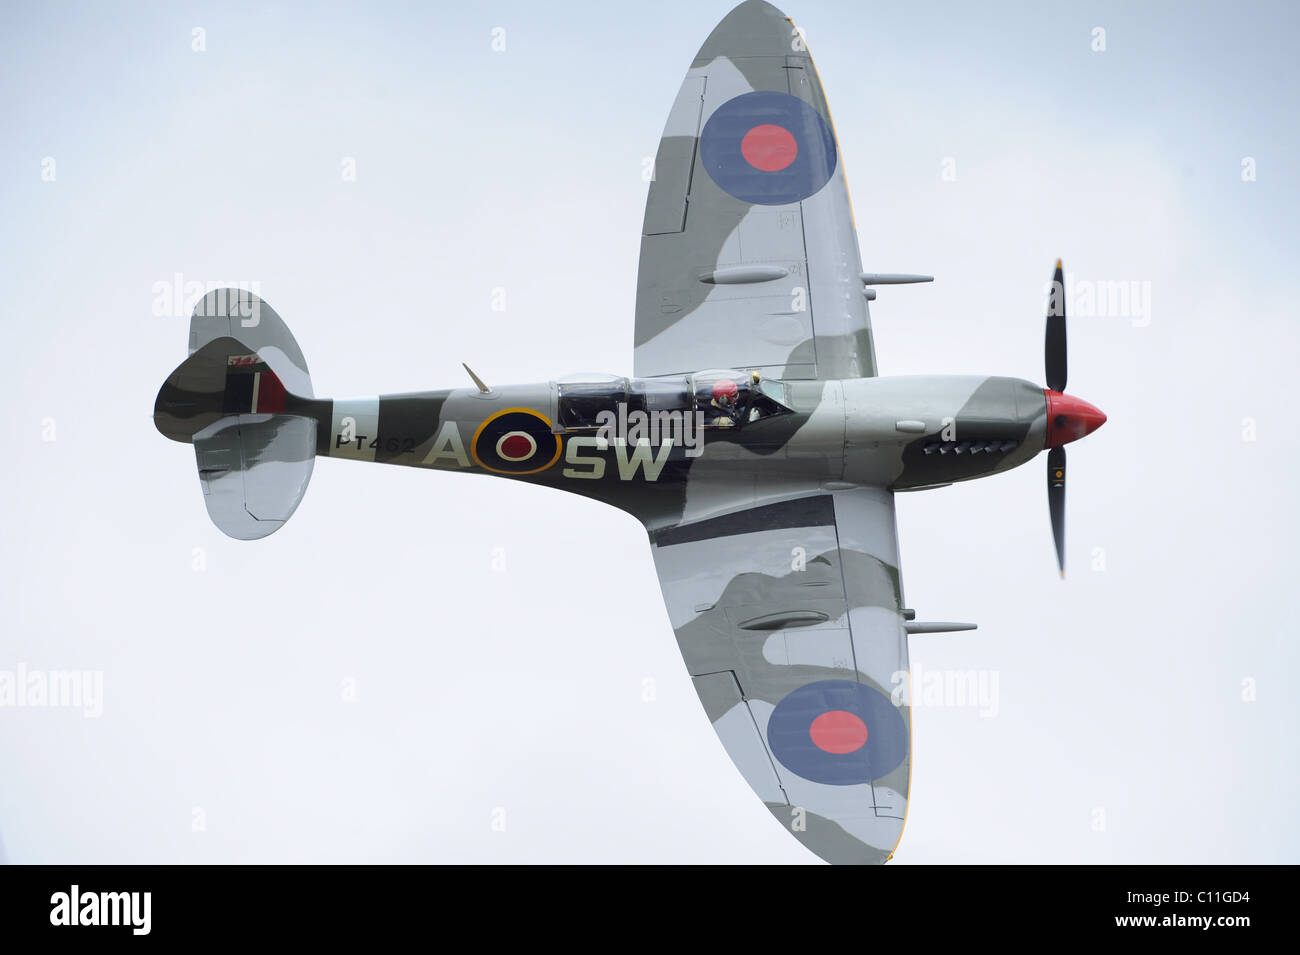 Rare 2 seater Supermarine Spitfire,  in flight at an airshow - Stock Image